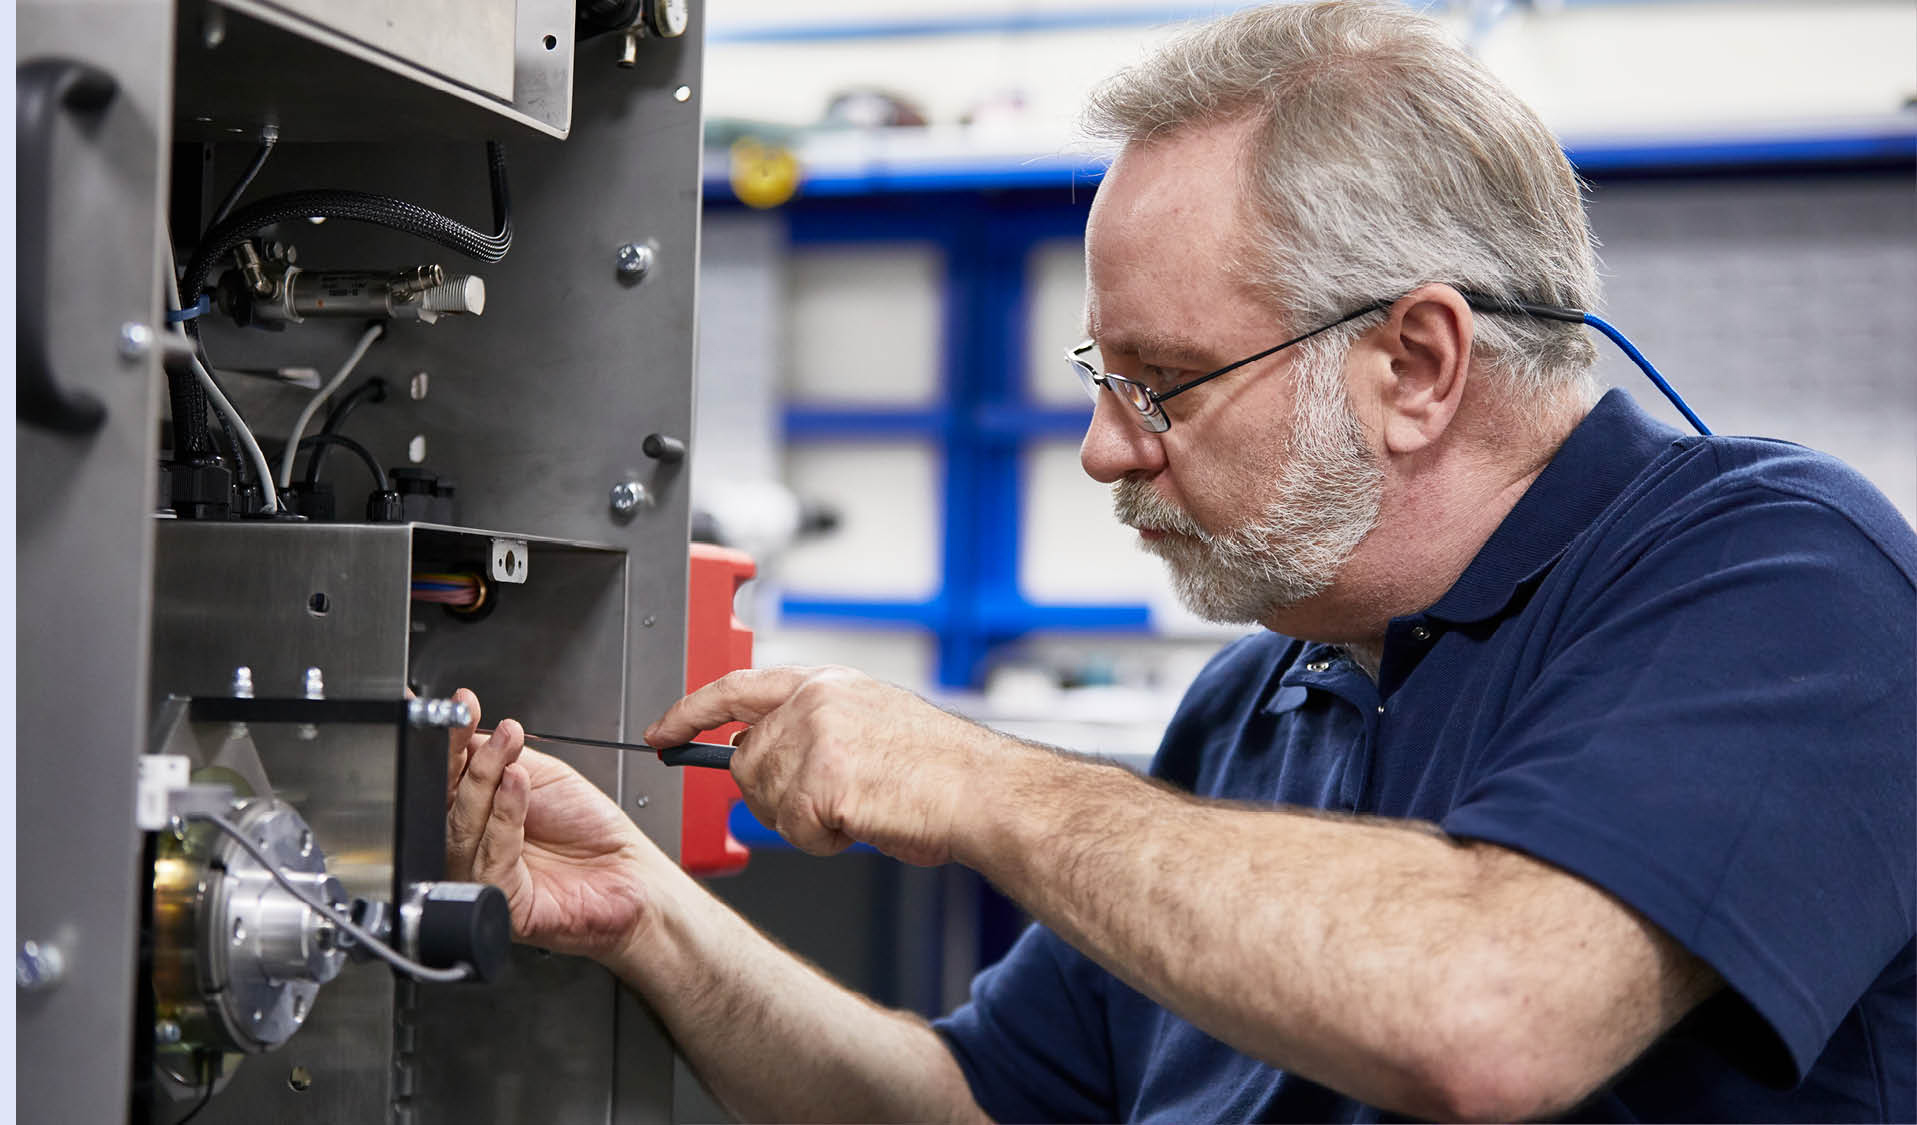 Service engineer for We Seal performs maintenance on bag sealing machine